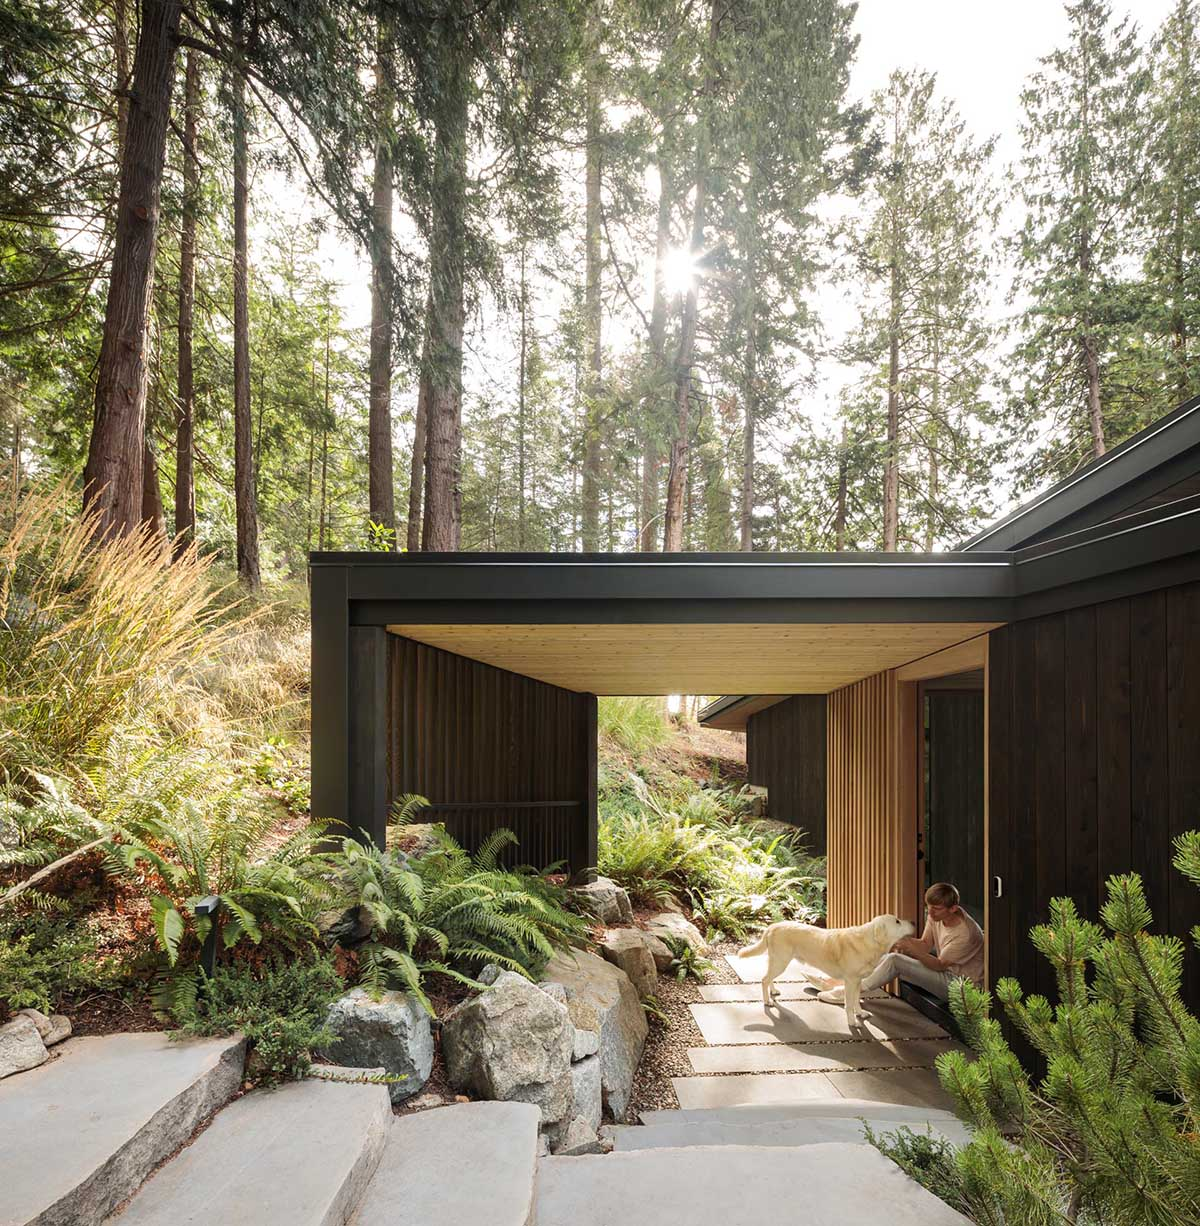 The entryway guides people to the front door with a path lined with boulders and ferns.